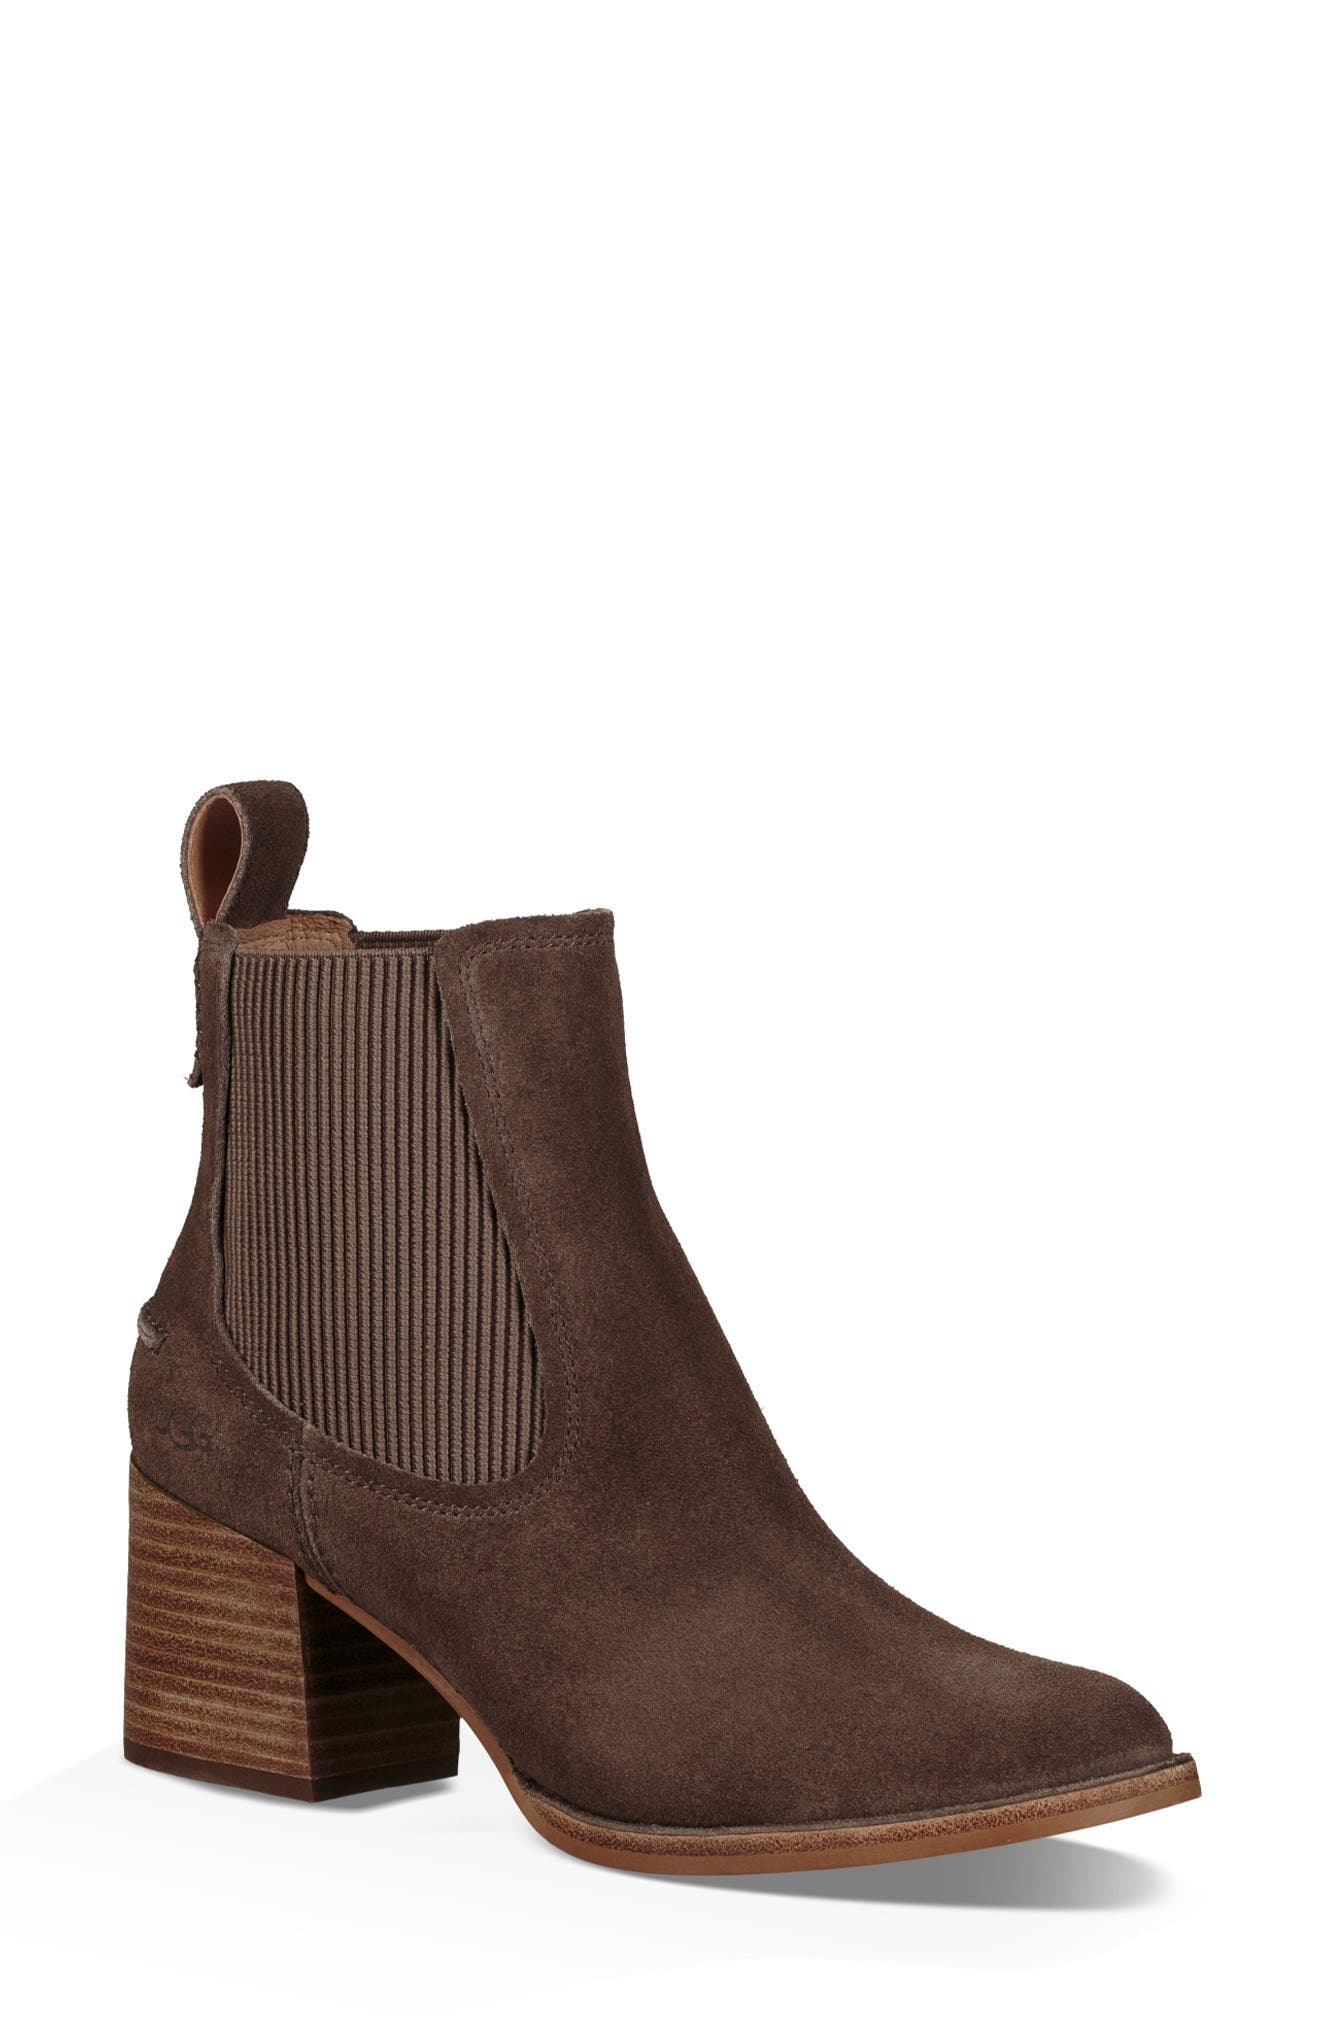 Faye Chelsea Bootie,                             Main thumbnail 1, color,                             MYSTERIOUS SUEDE